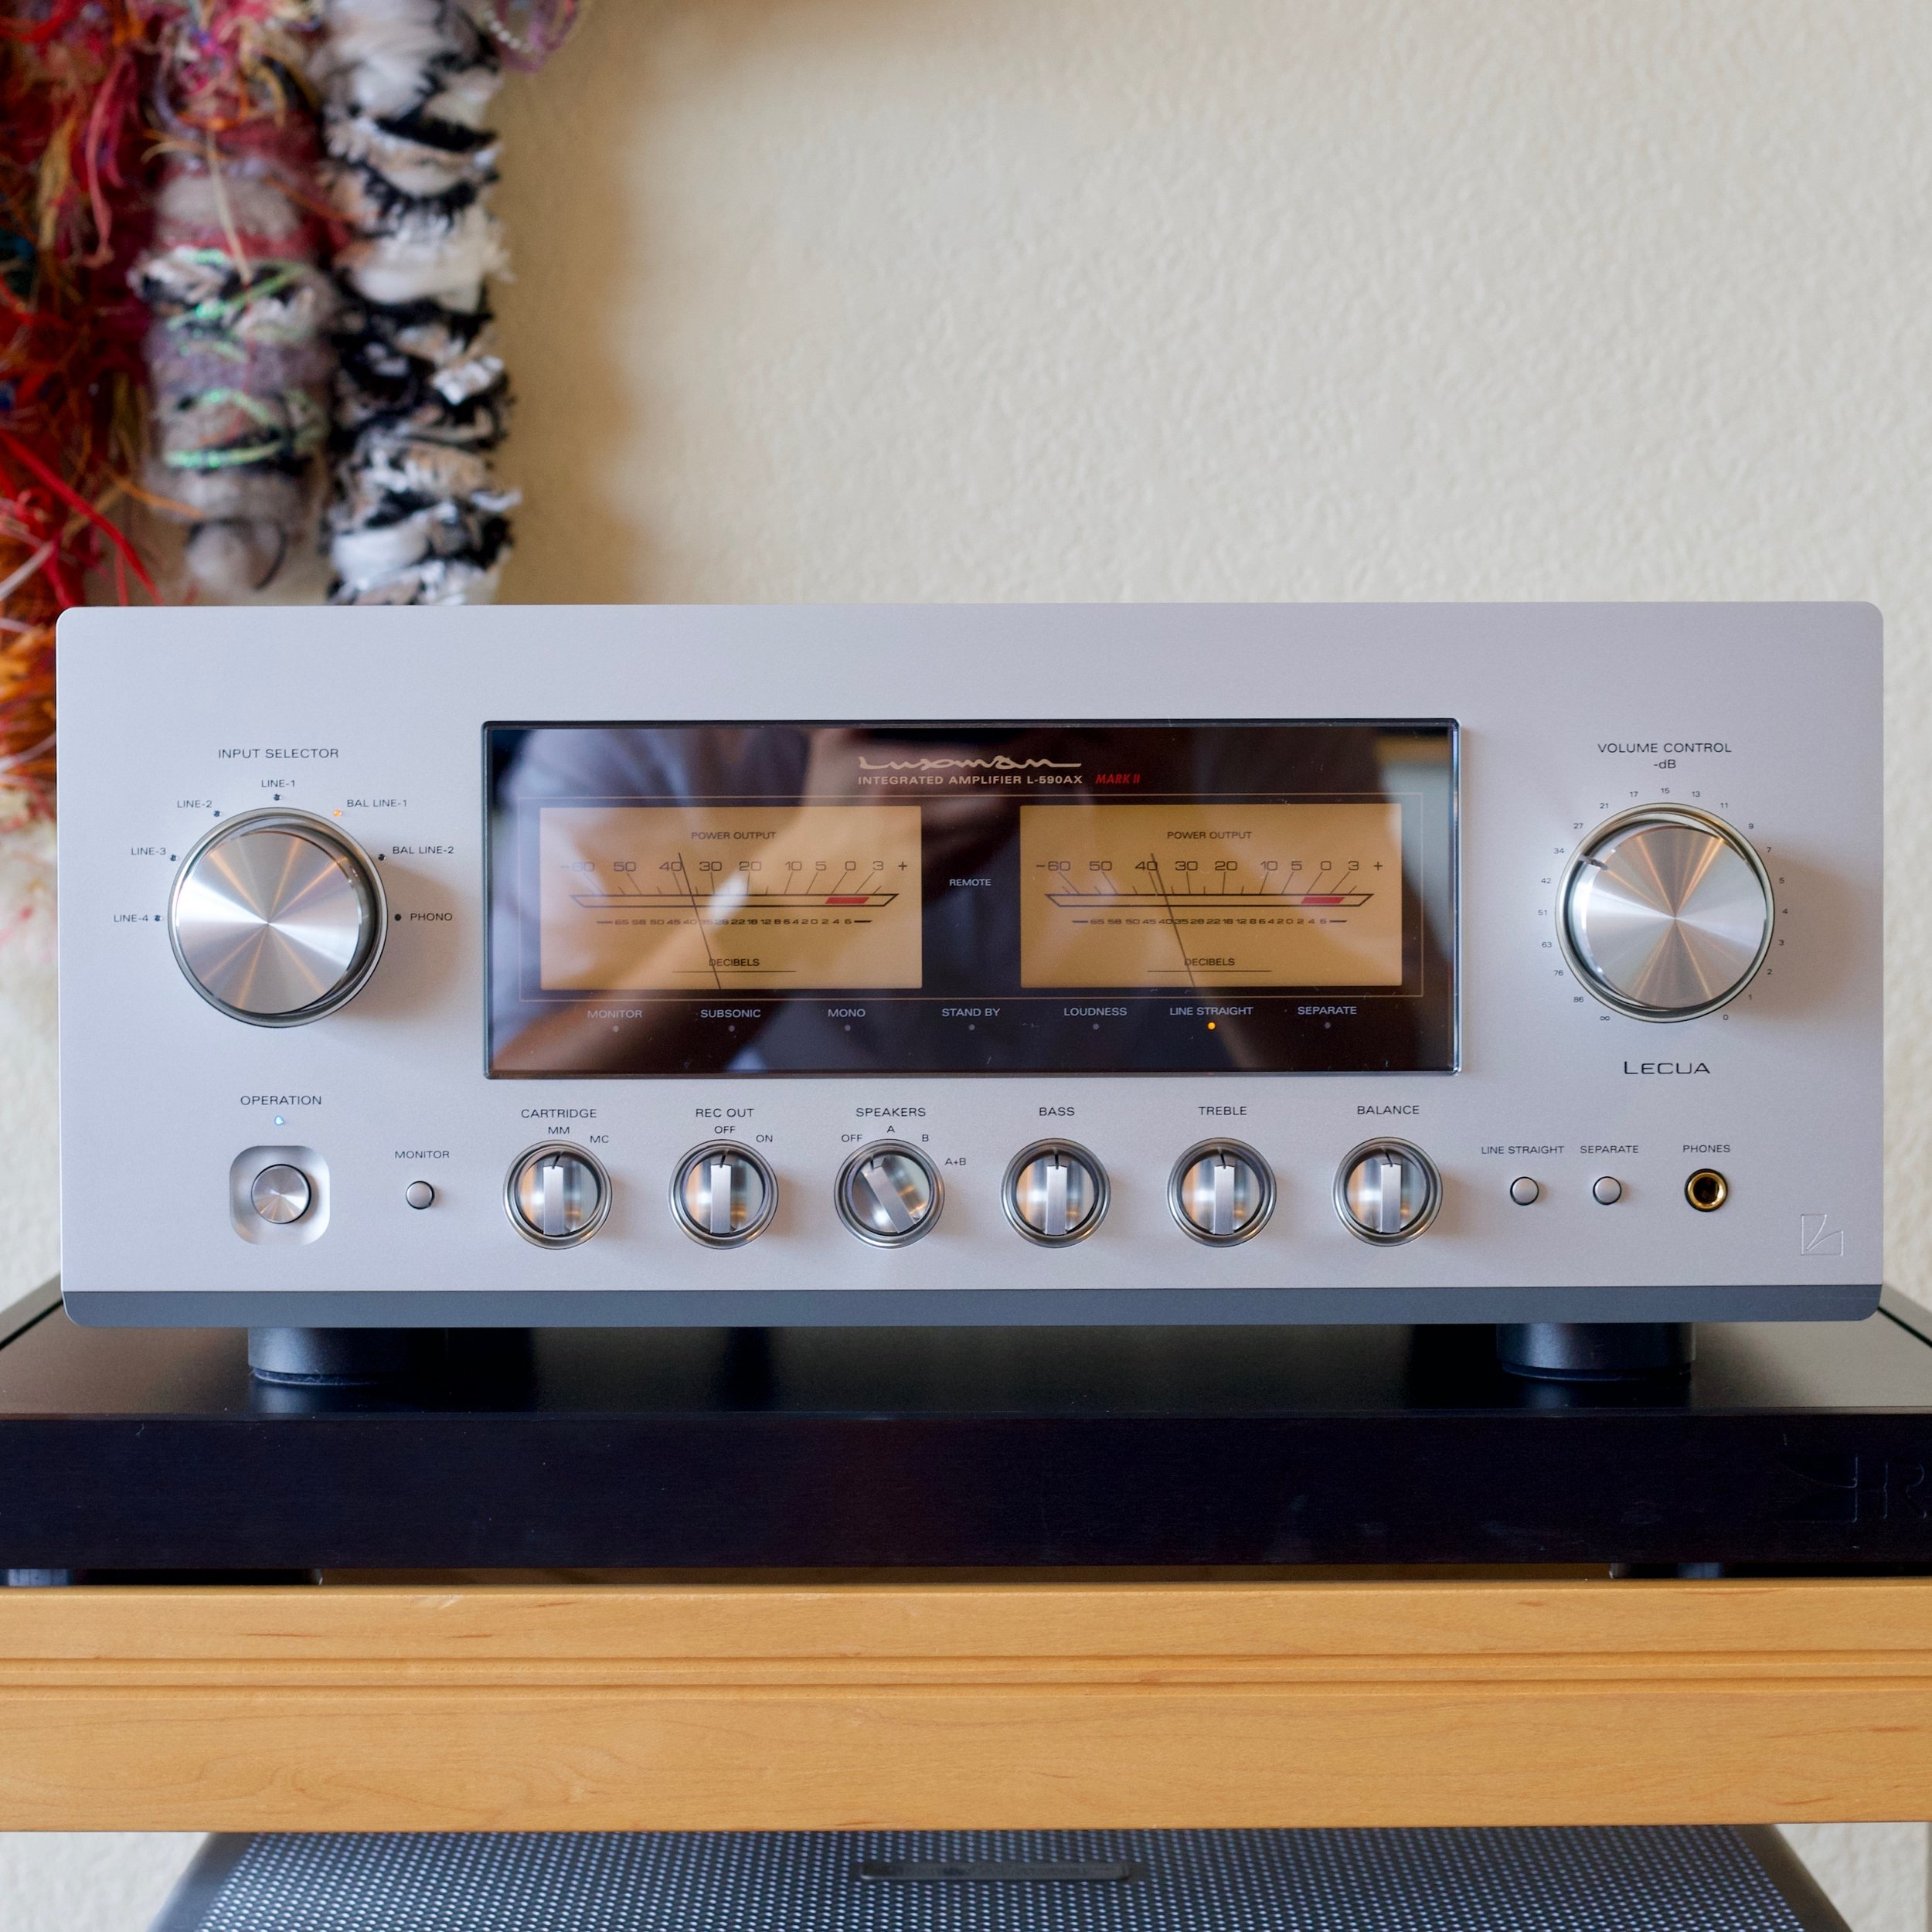 Luxman L-590AX II  - Integrated Amplifier  Pure Class-A 30-watt amplifier with subtle glowing orange meters. Built-in MM/MC phono input, adjustable tone/balance, headphone amp.   See store for details